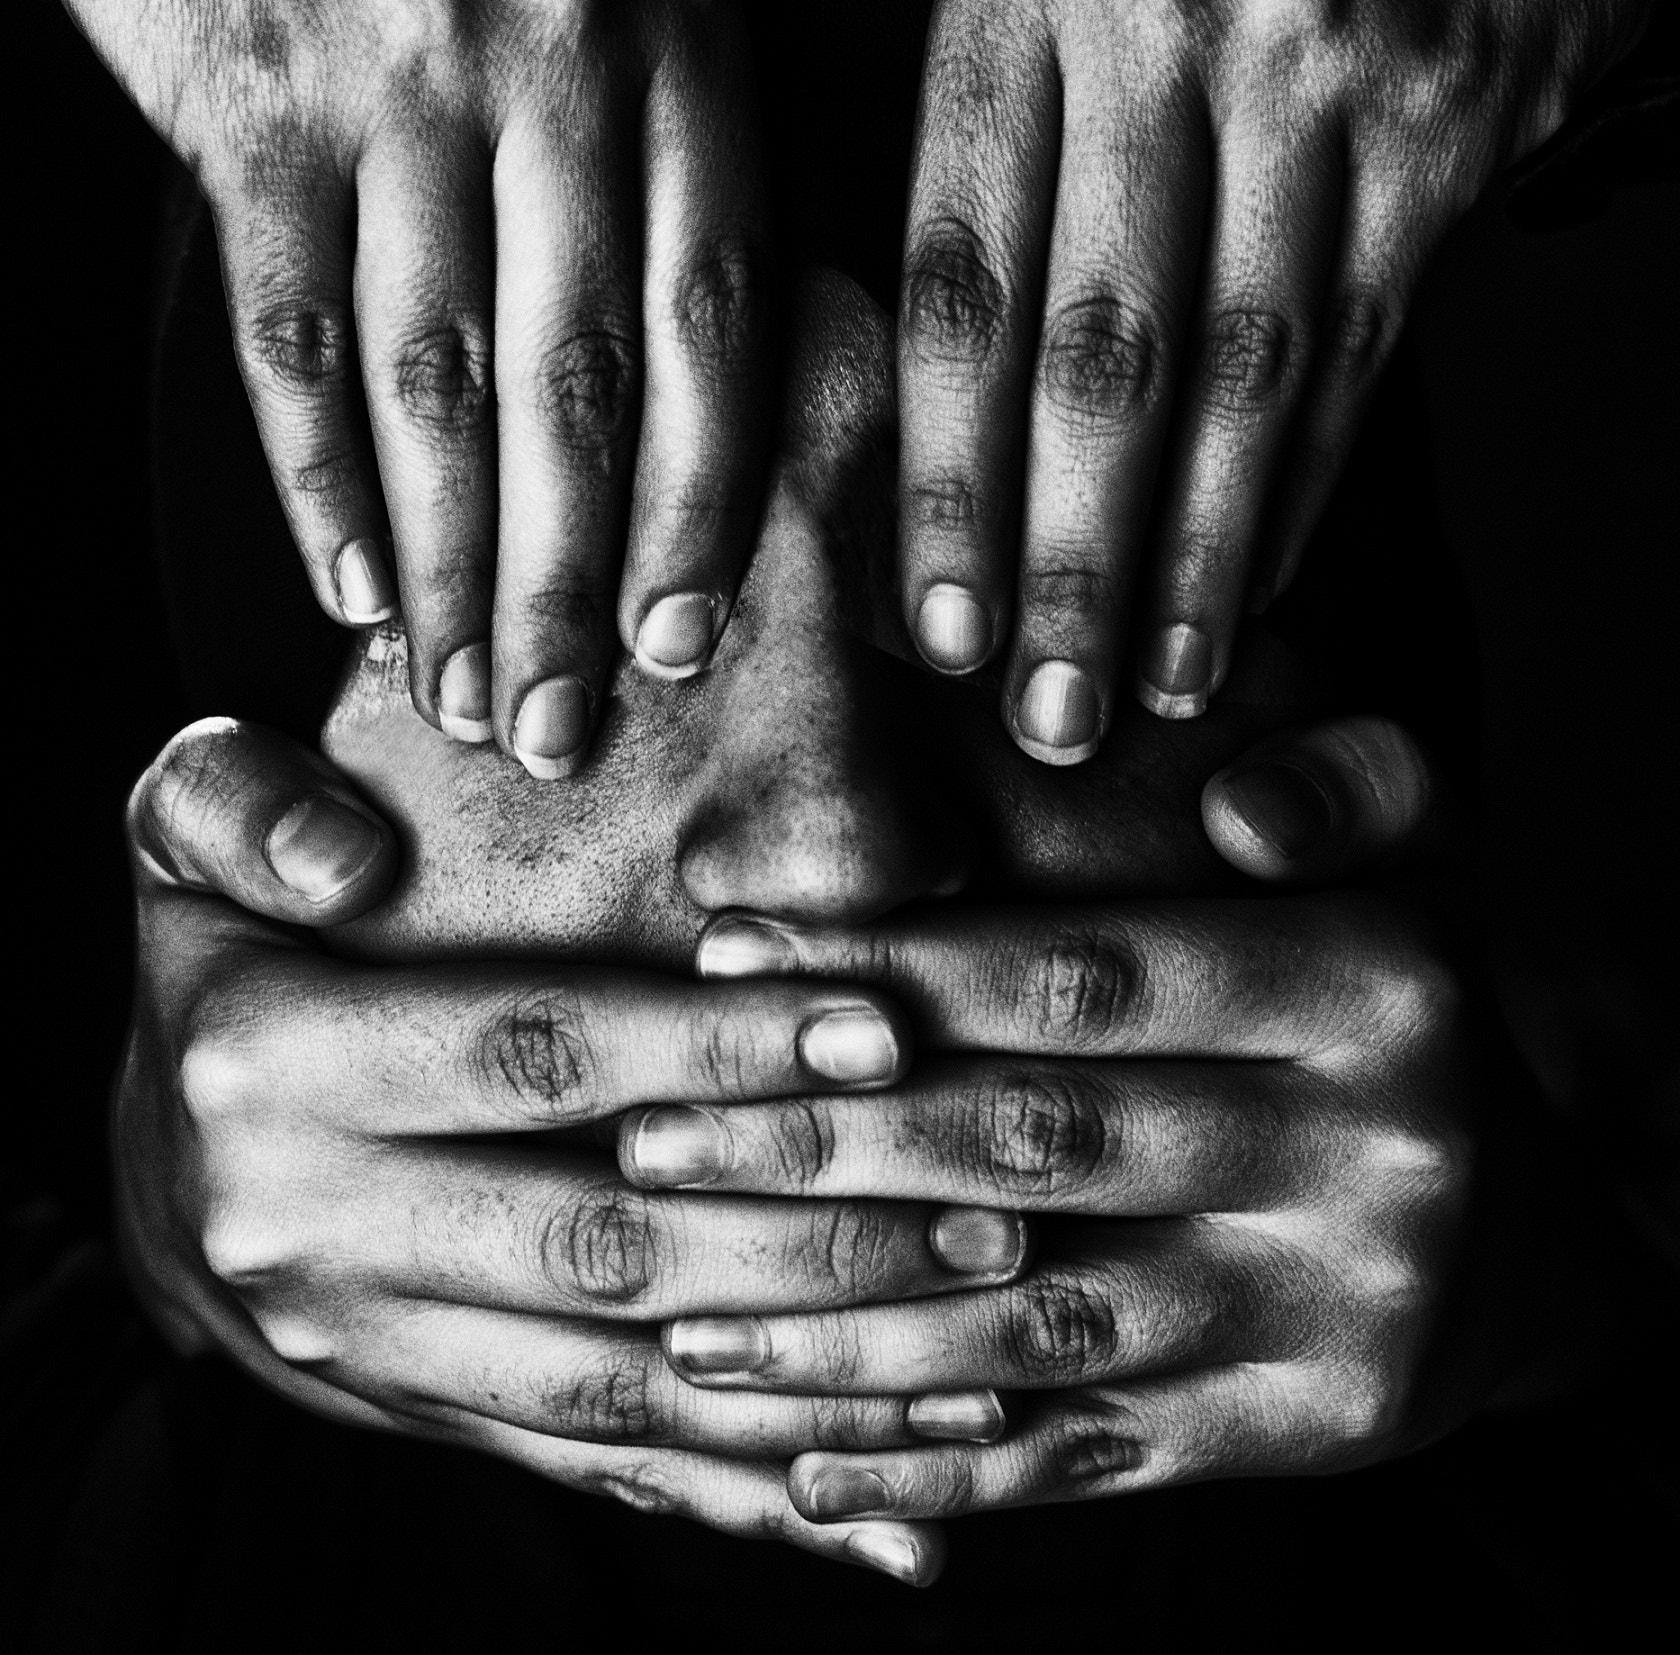 Photograph hands by vahid babaei on 500px